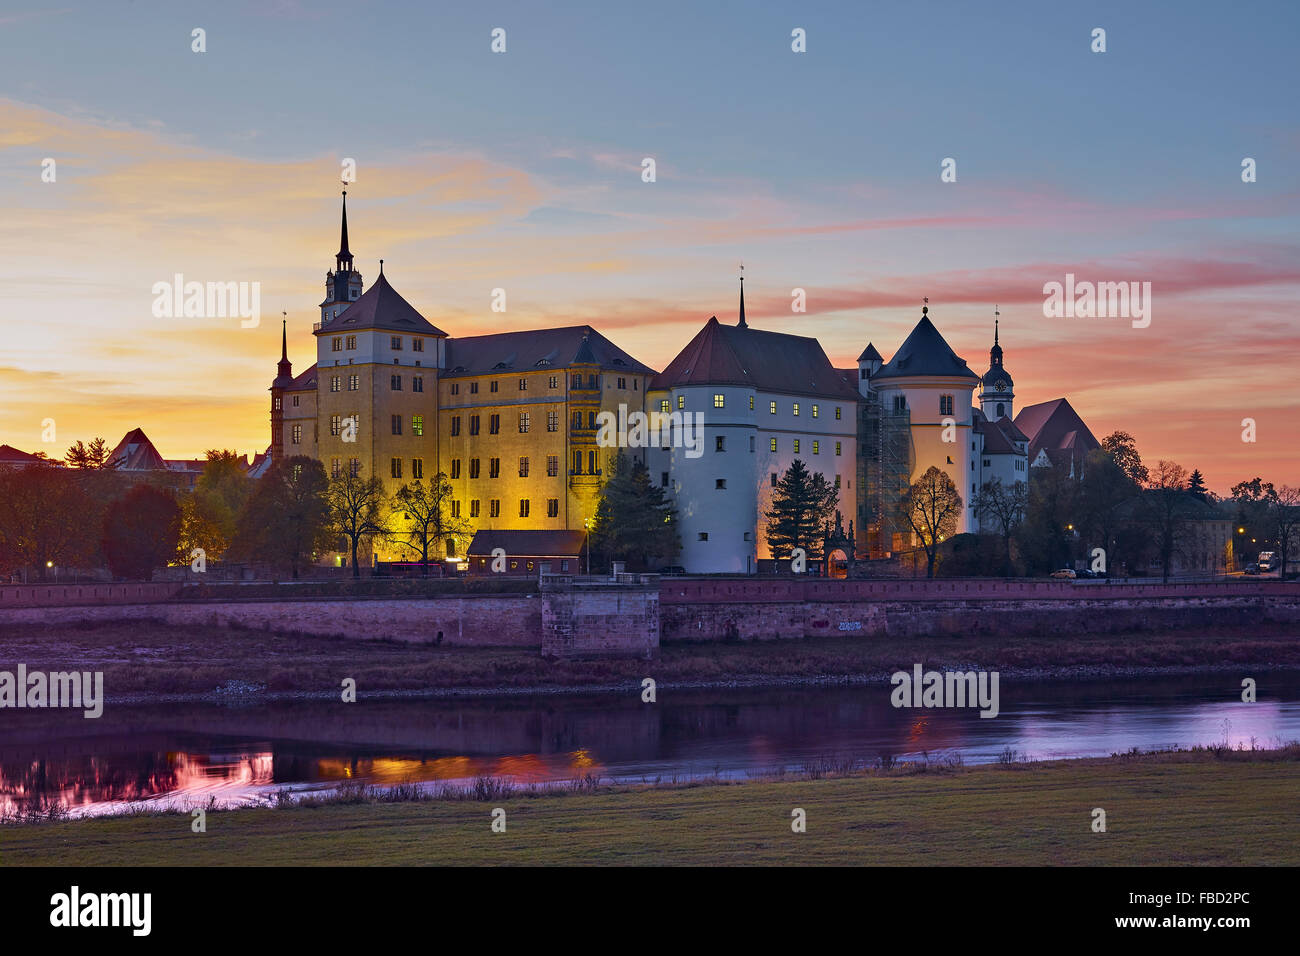 Hartenfels Castle in Torgau, Saxony, Germany - Stock Image